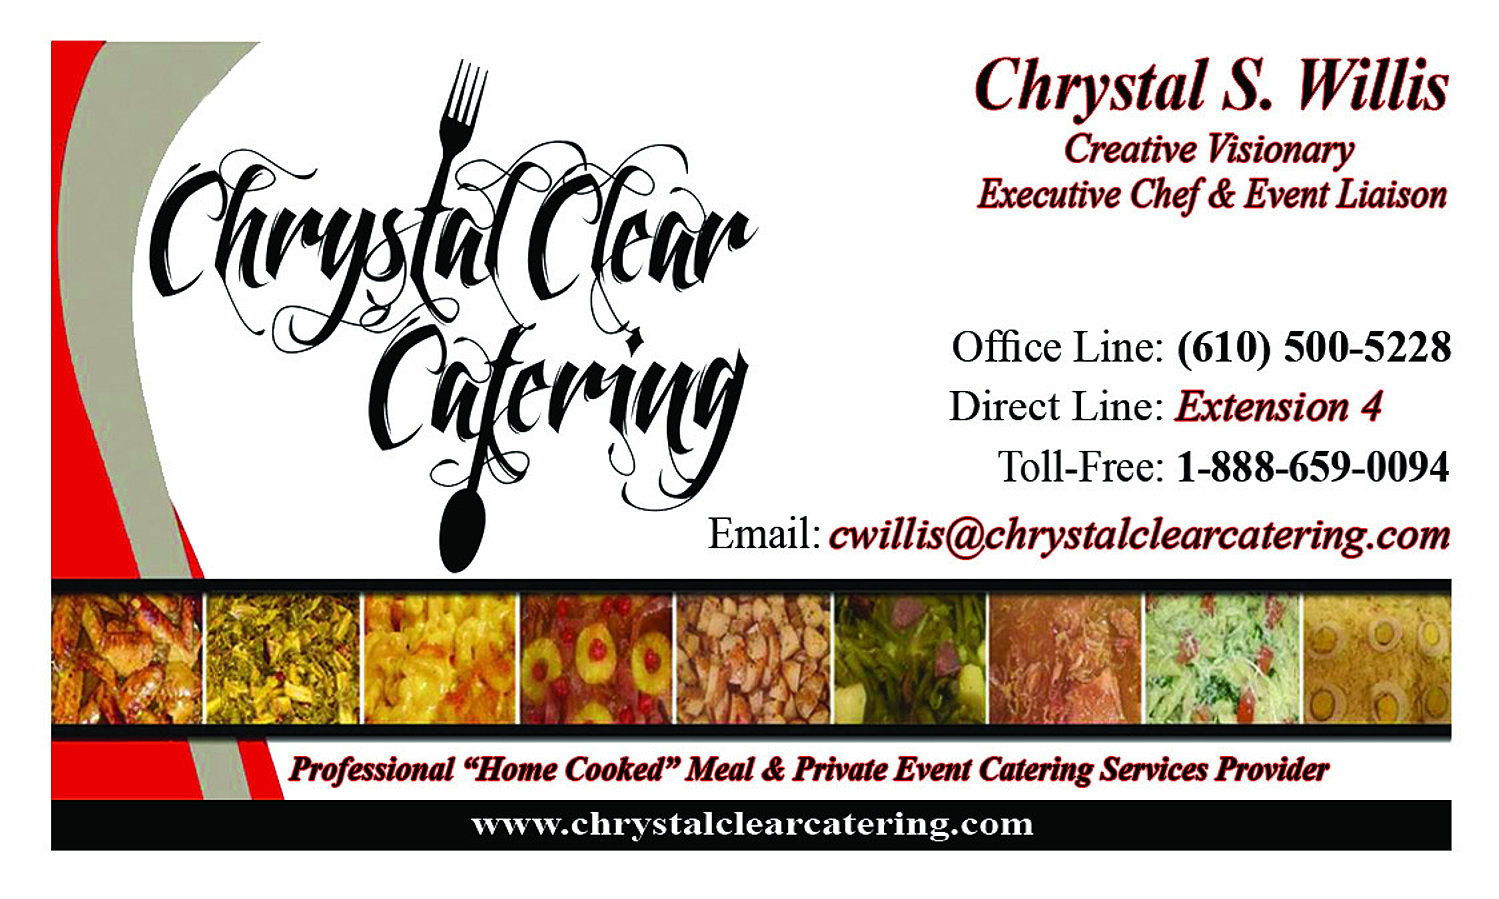 Catering Services Business Cards | Arts - Arts